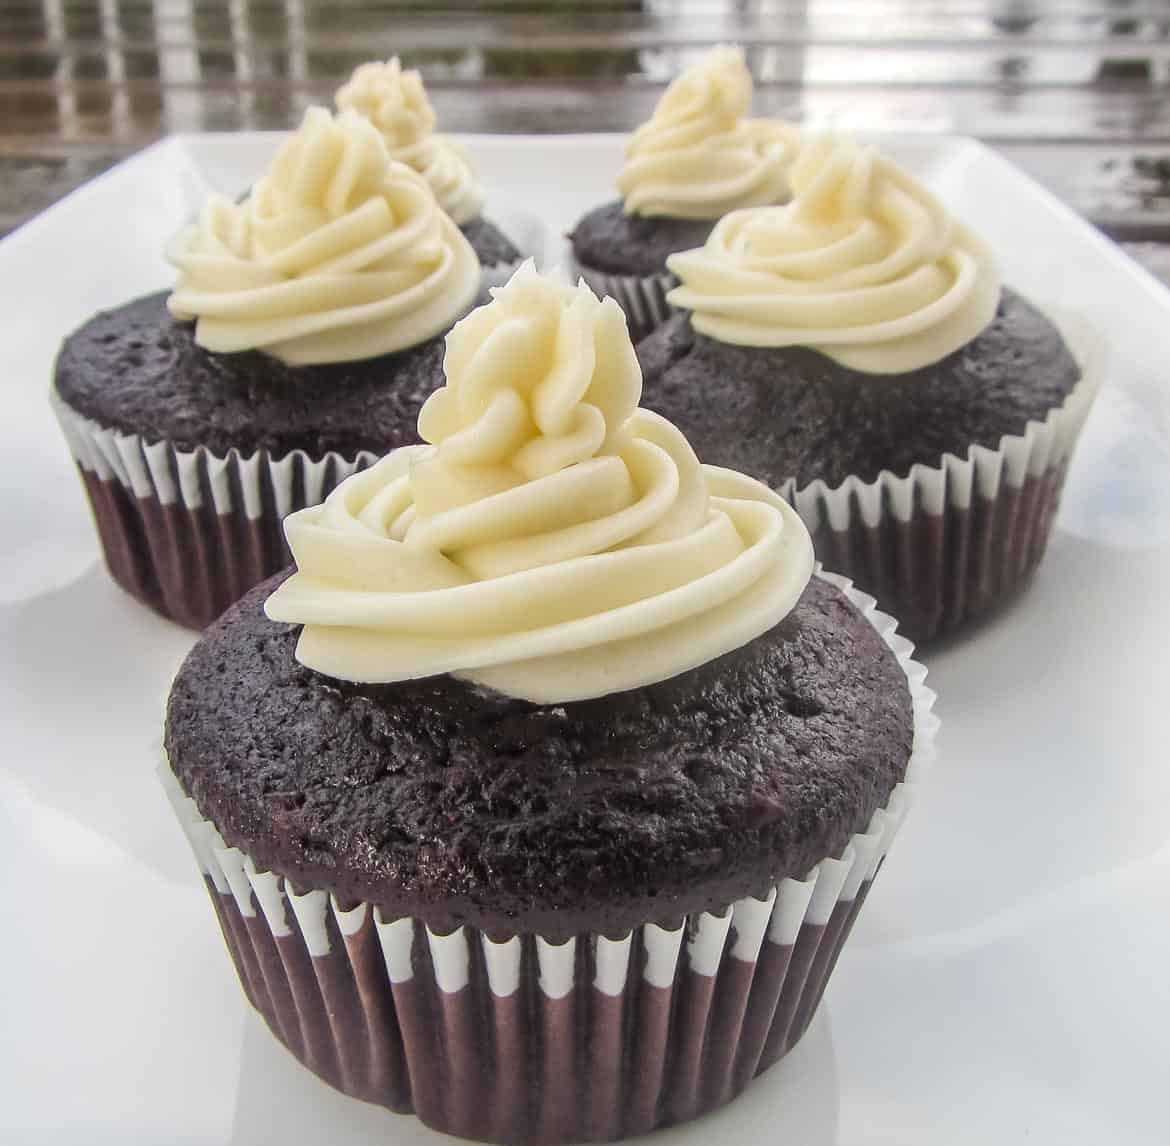 One Bowl Never Fail Rich And Moist Chocolate Cupcakes Recipe In 2020 Cupcake Recipes Chocolate Cupcake Recipes Chocolate Cupcakes Easy